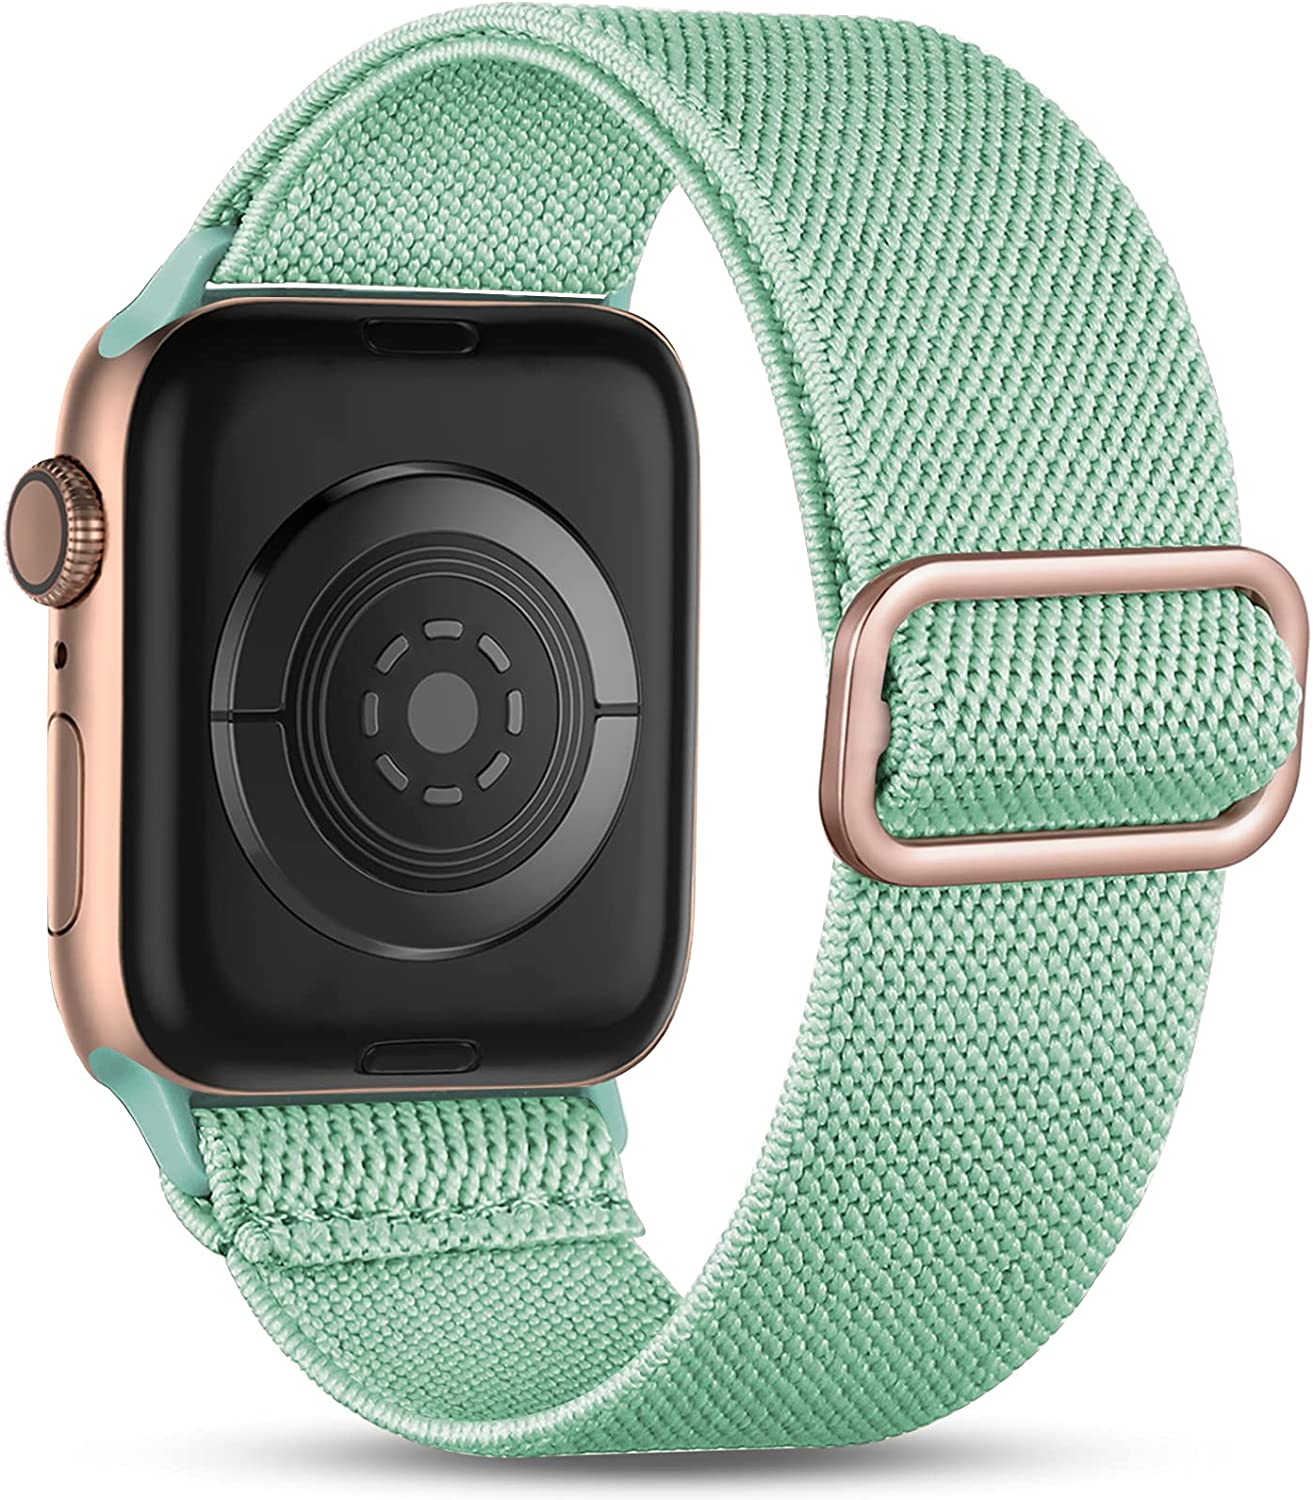 Witzon Compatible with Apple Watch Band 44mm 42mm 40mm 38mm for Women Men, Elastic Solo Loop Soft Breathable Braided Nylon Stretchy Bands for iWatch / Apple Watch SE Series 6 5 4 3 2 1